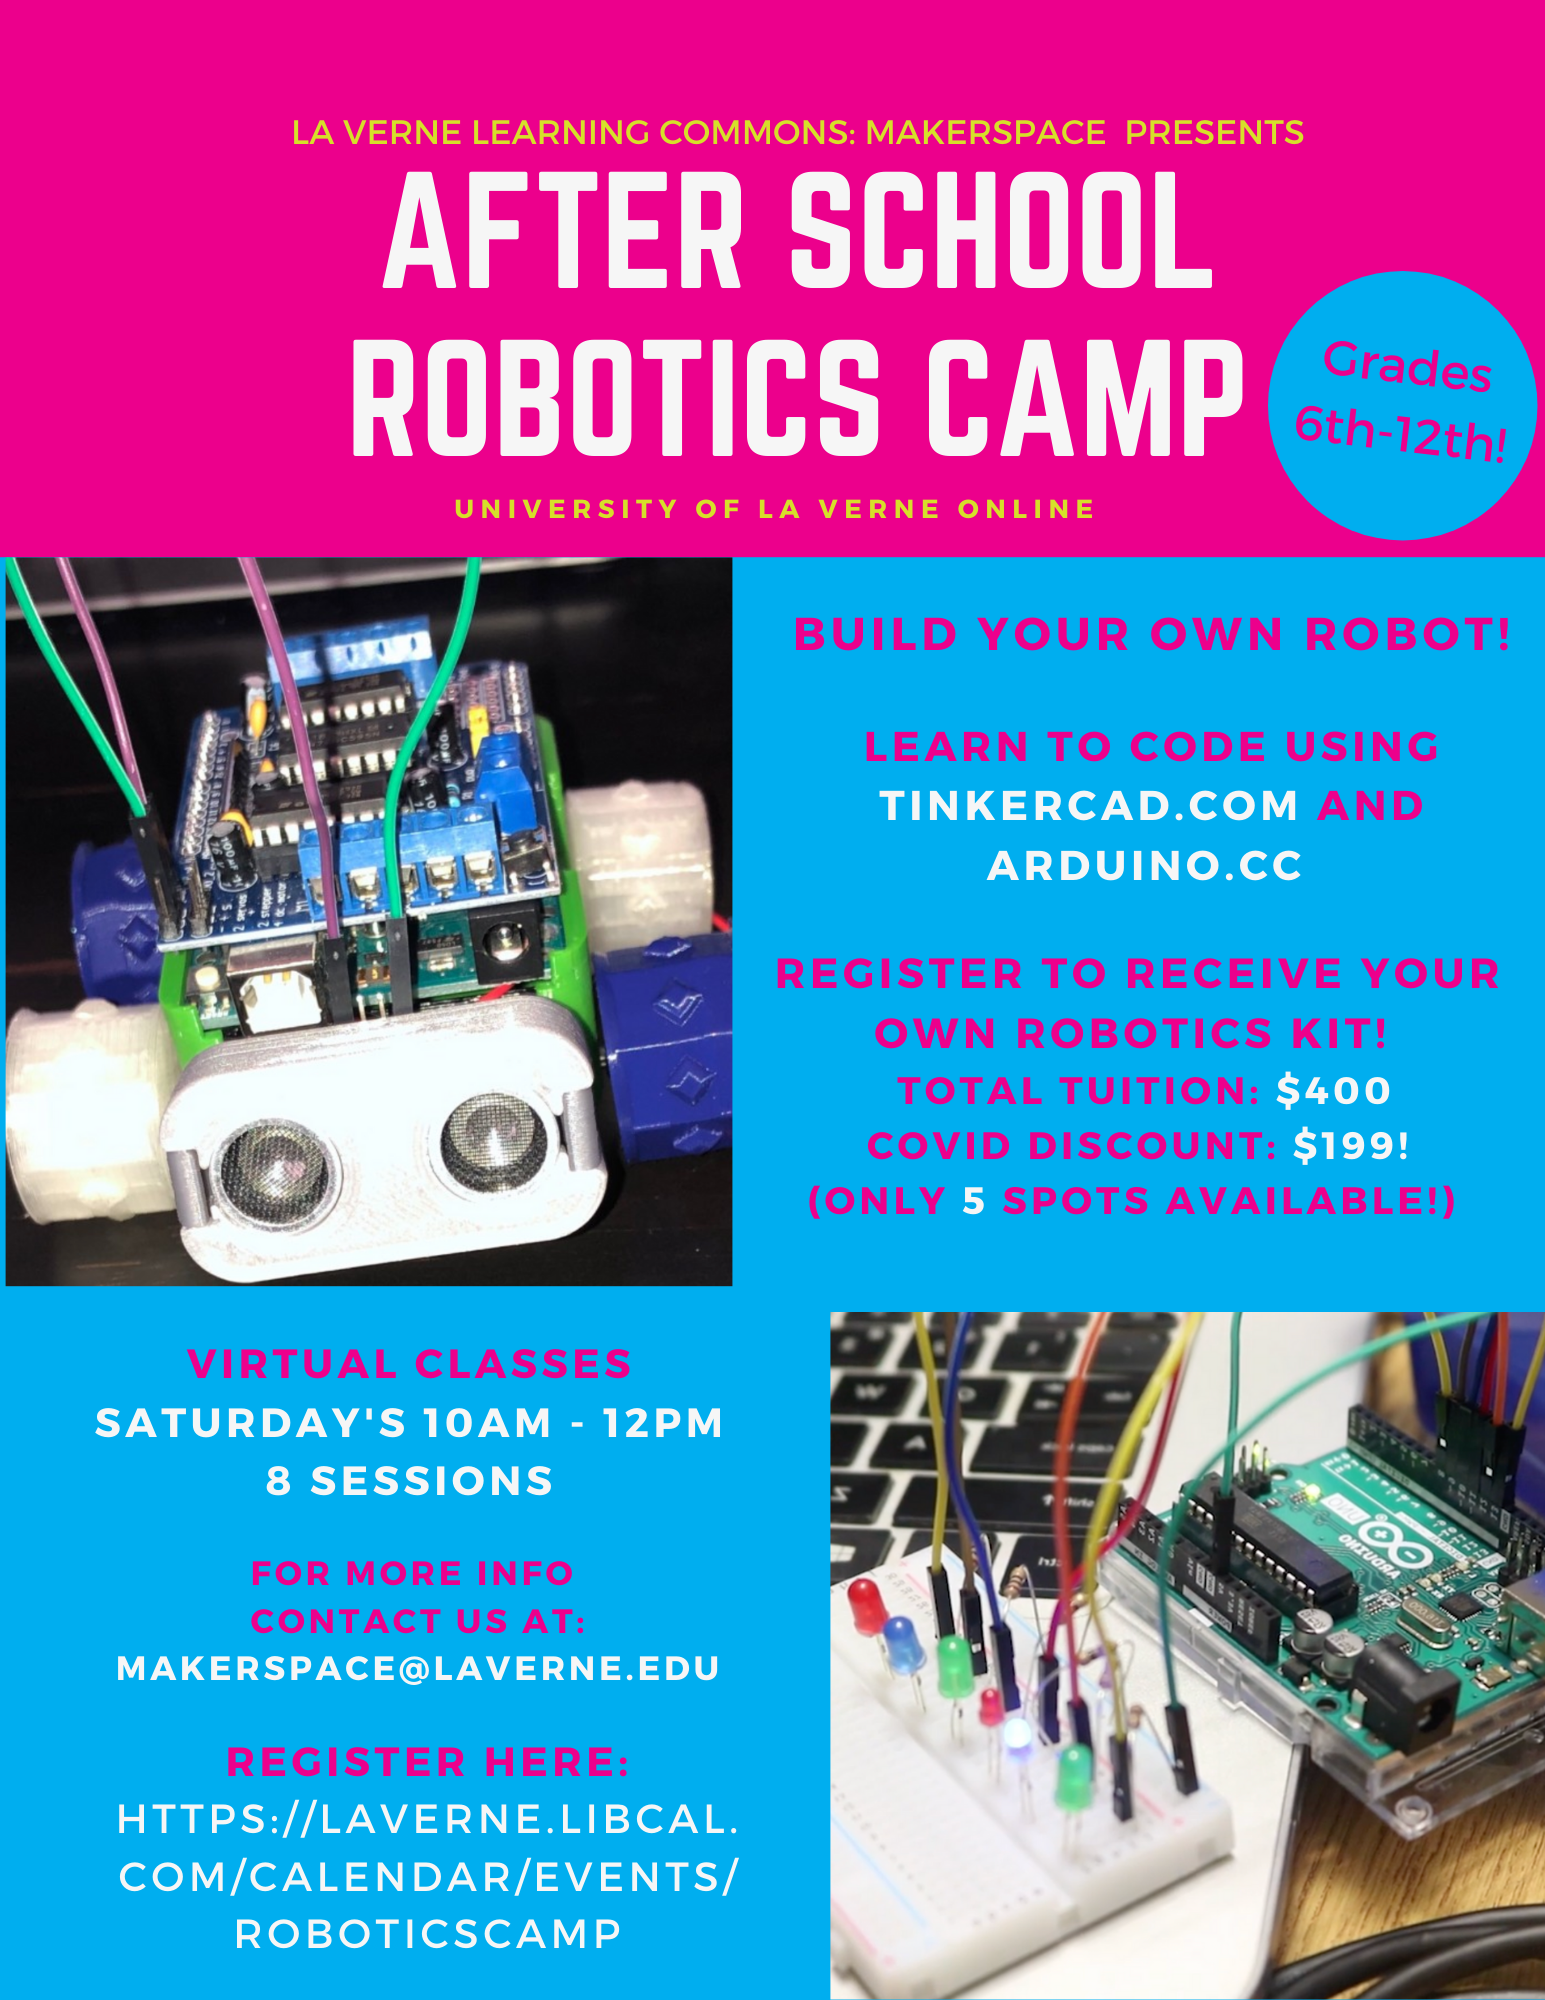 After School Robotics Camp! With Wilson Library Makerspace